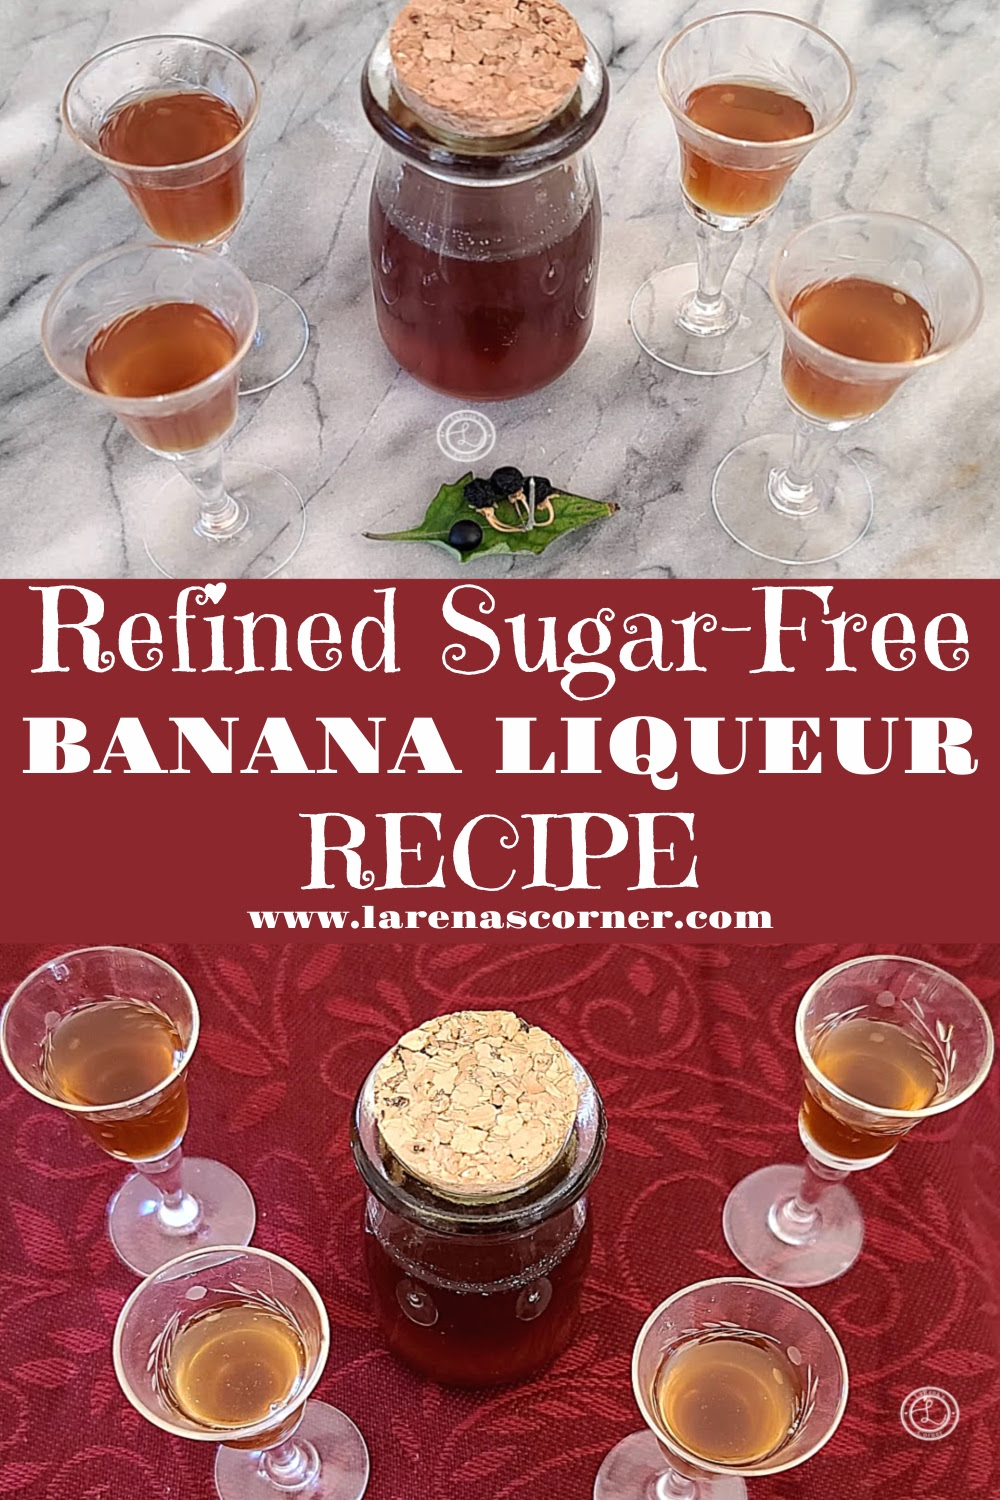 Refined Sugar-Free Banana Liqueur 2 pictures of 4 small glasses of alcohol and a small bottle.